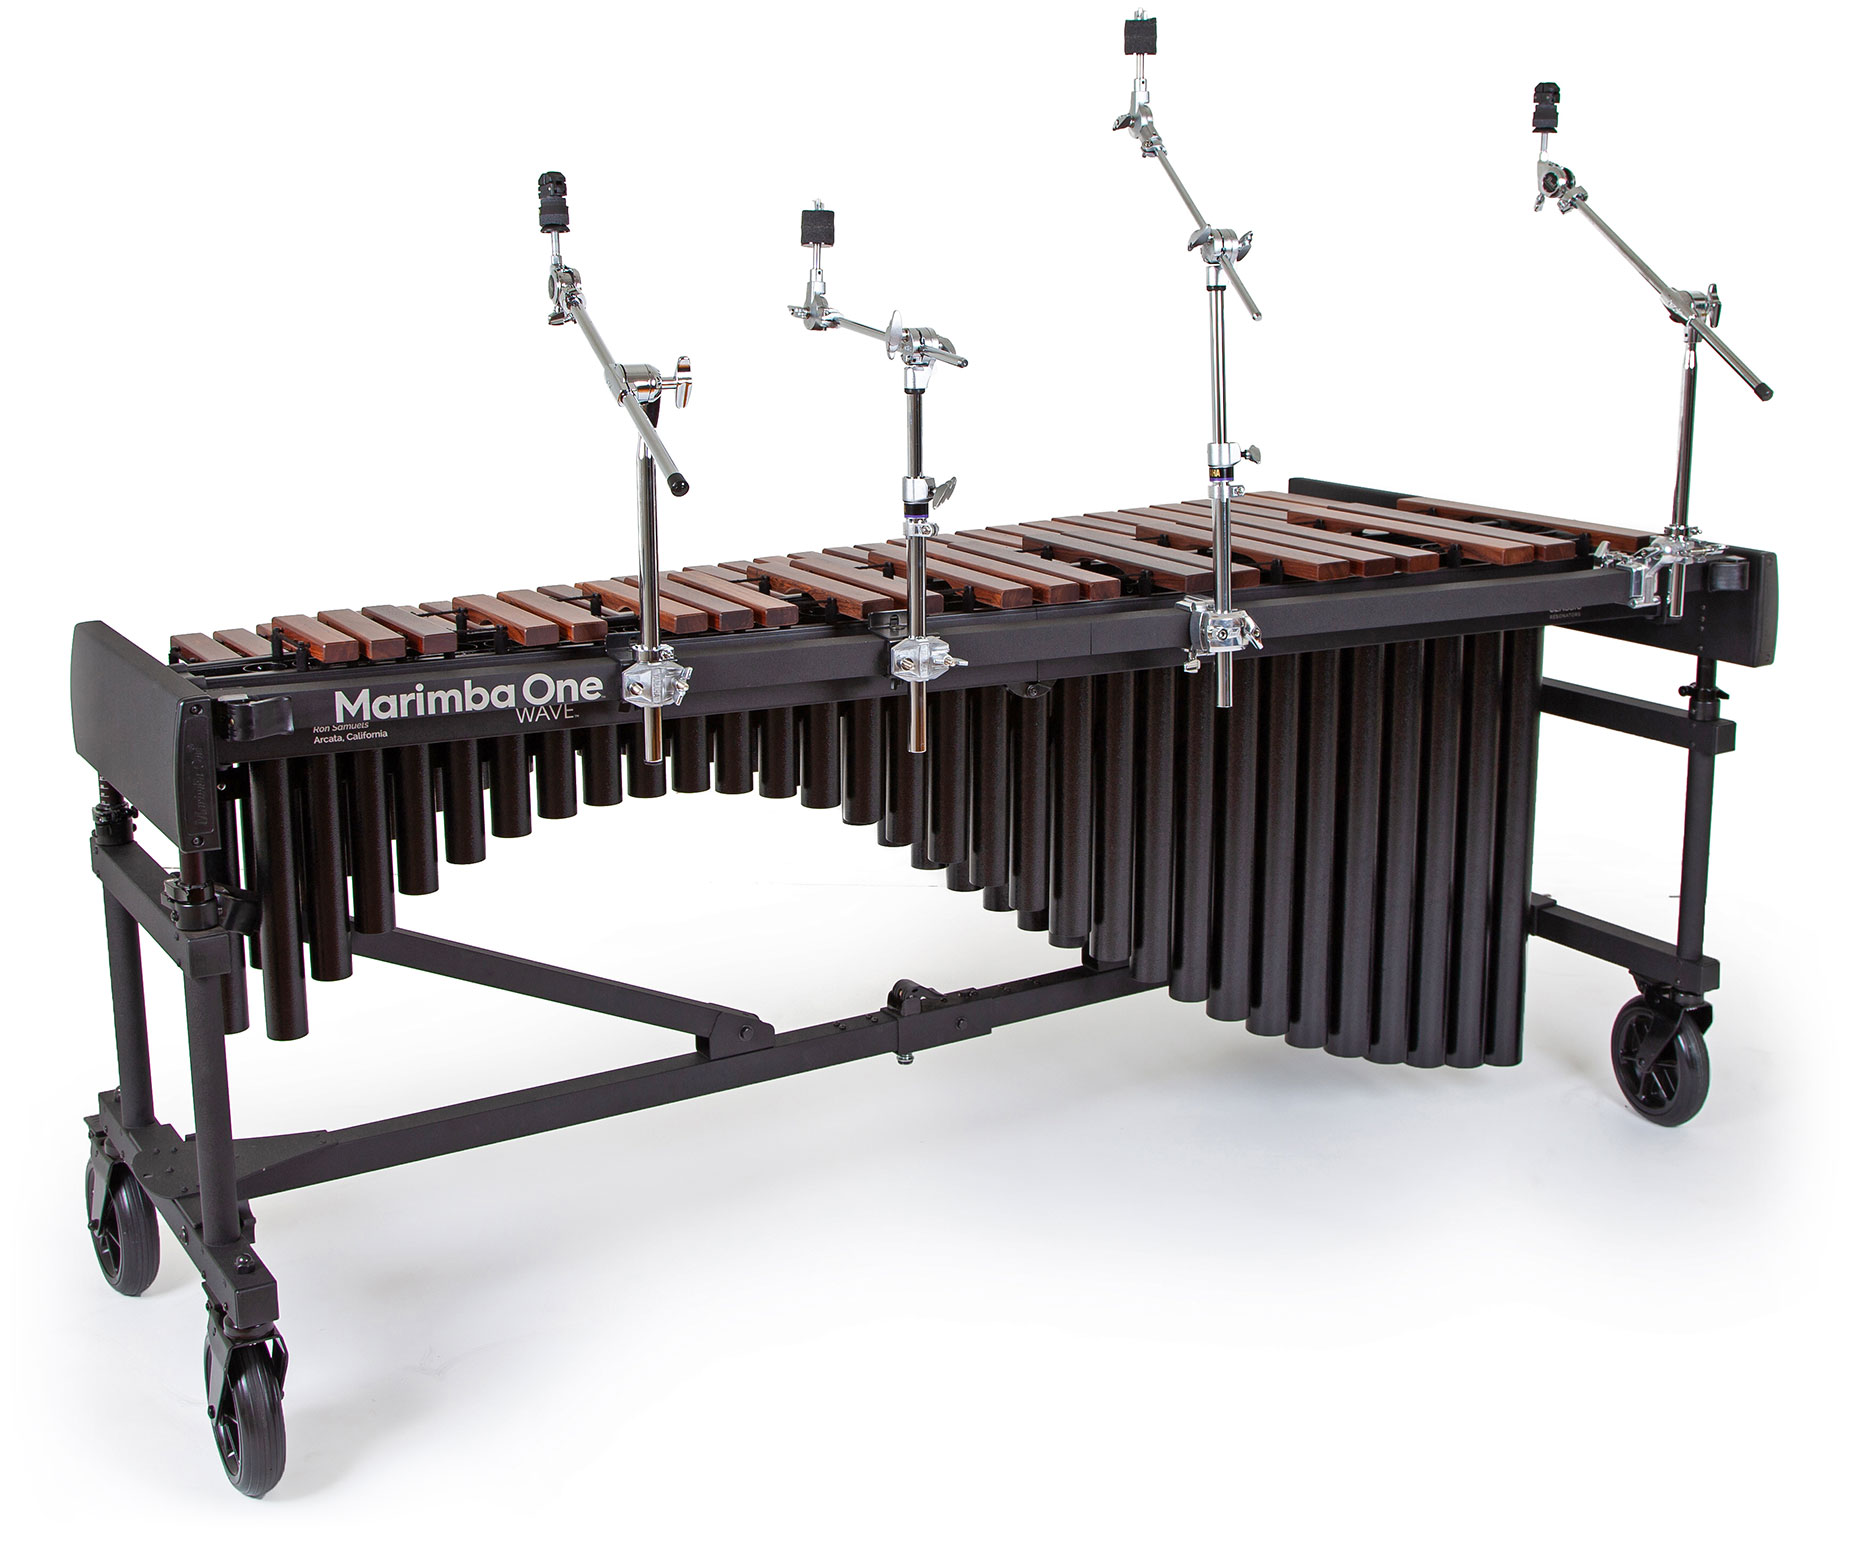 Marimba One Wave 9621 Marimba